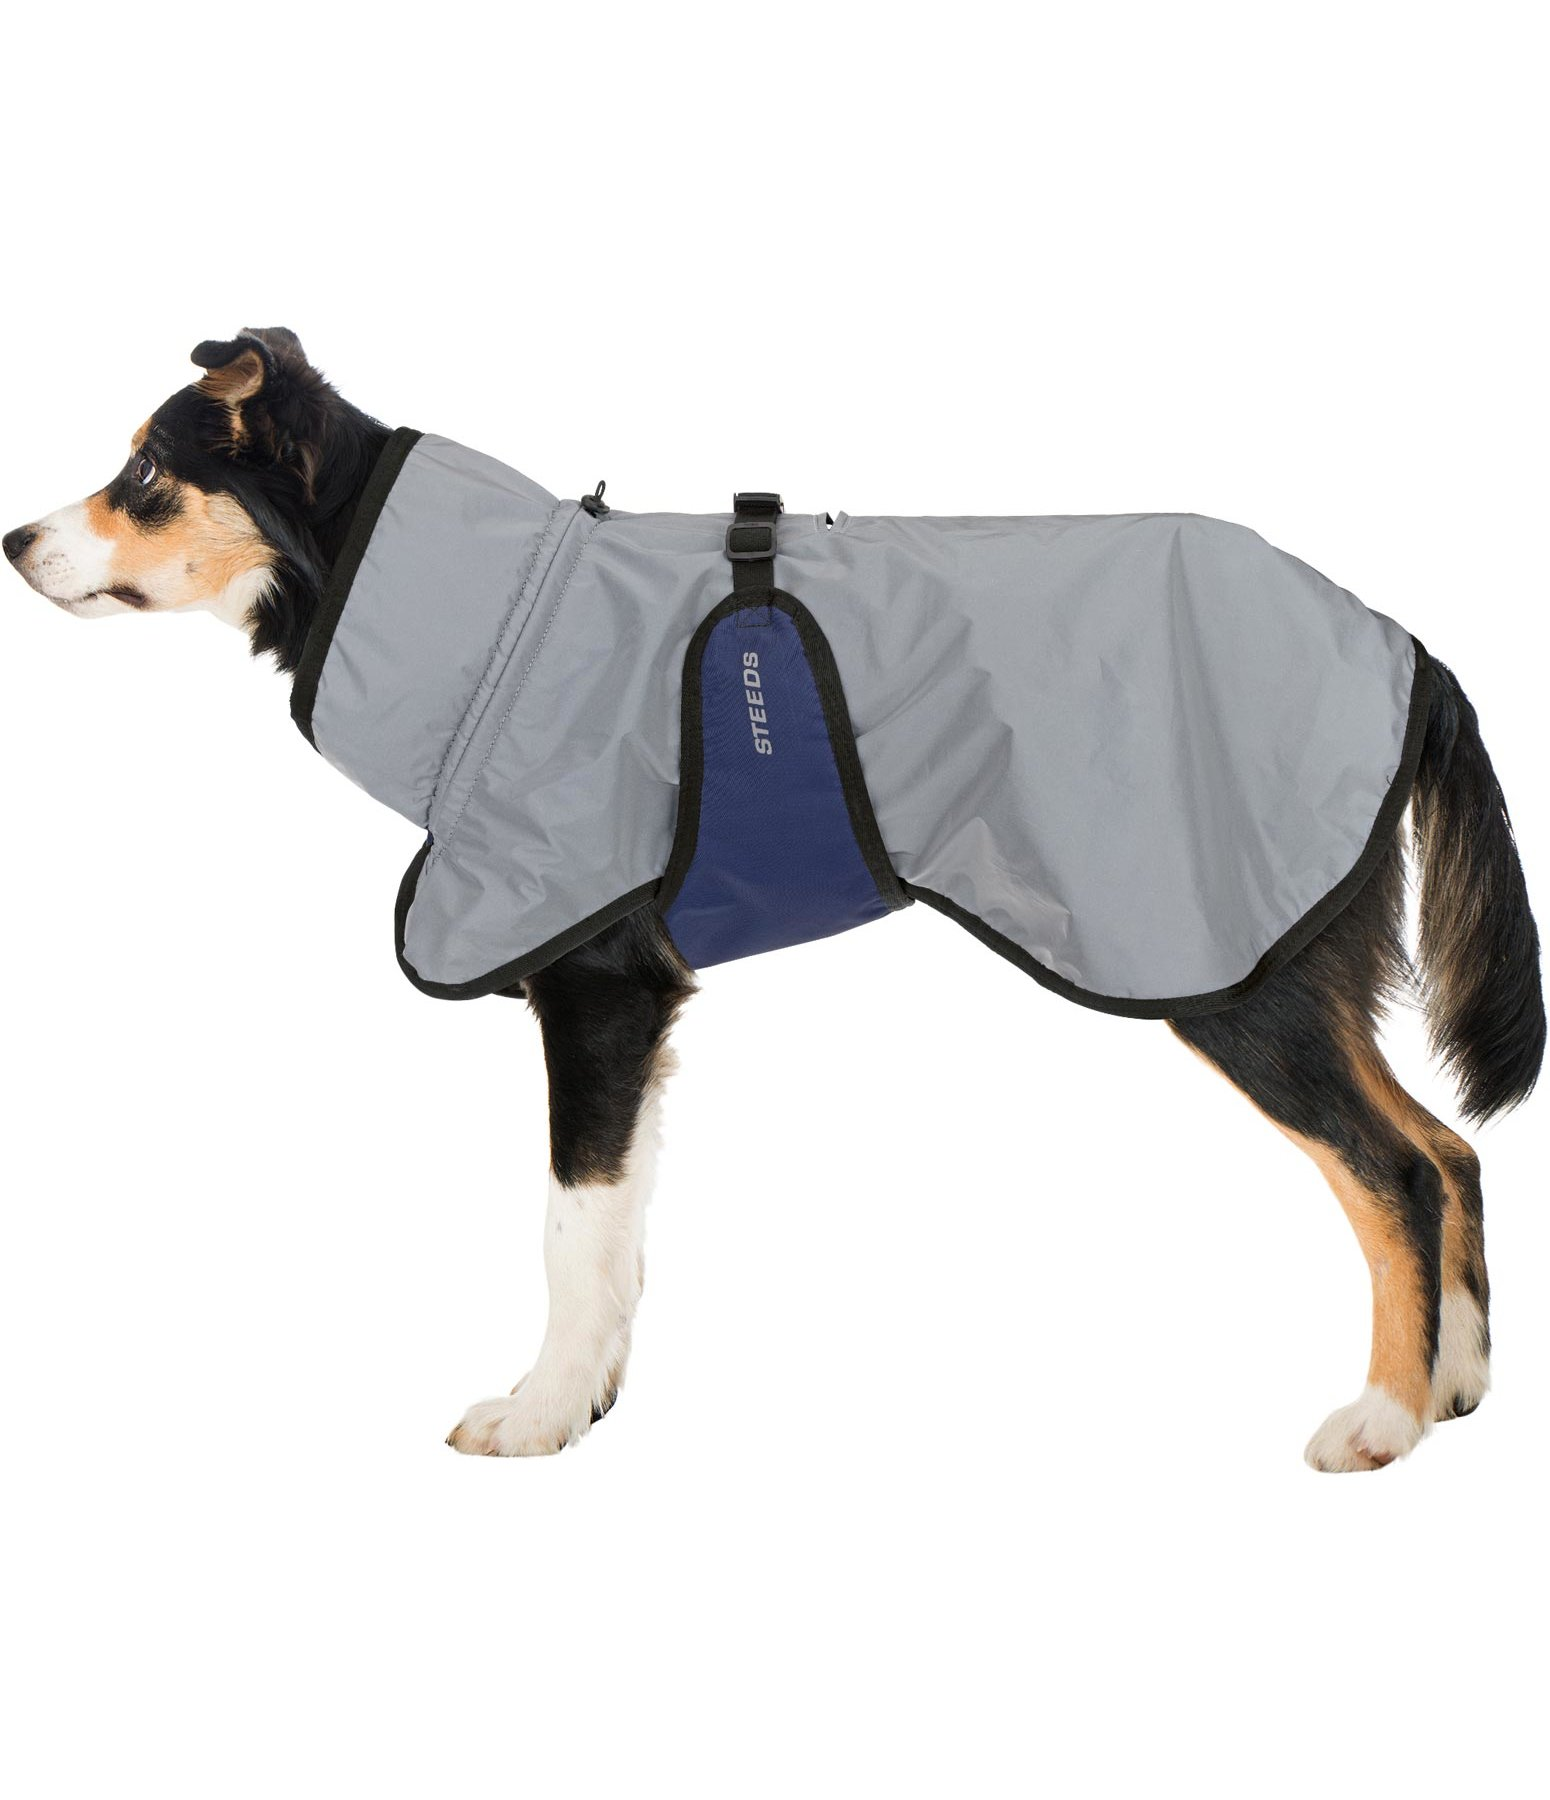 Reflex-Hundejacke Highlight